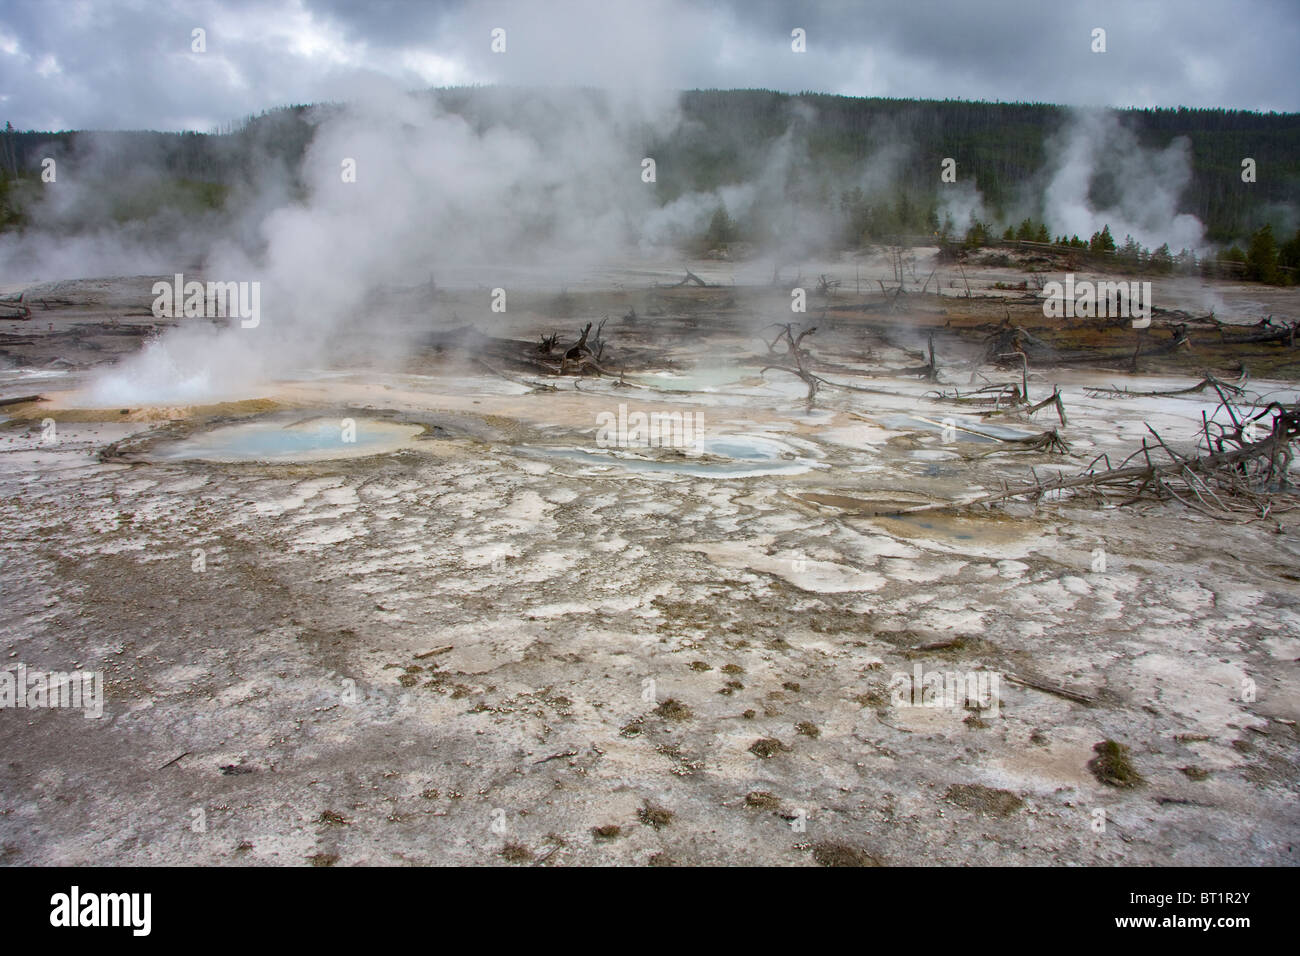 Hot springs and steam vents at Norris Geyser Basin, Yellowstone National Park, USA - Stock Image